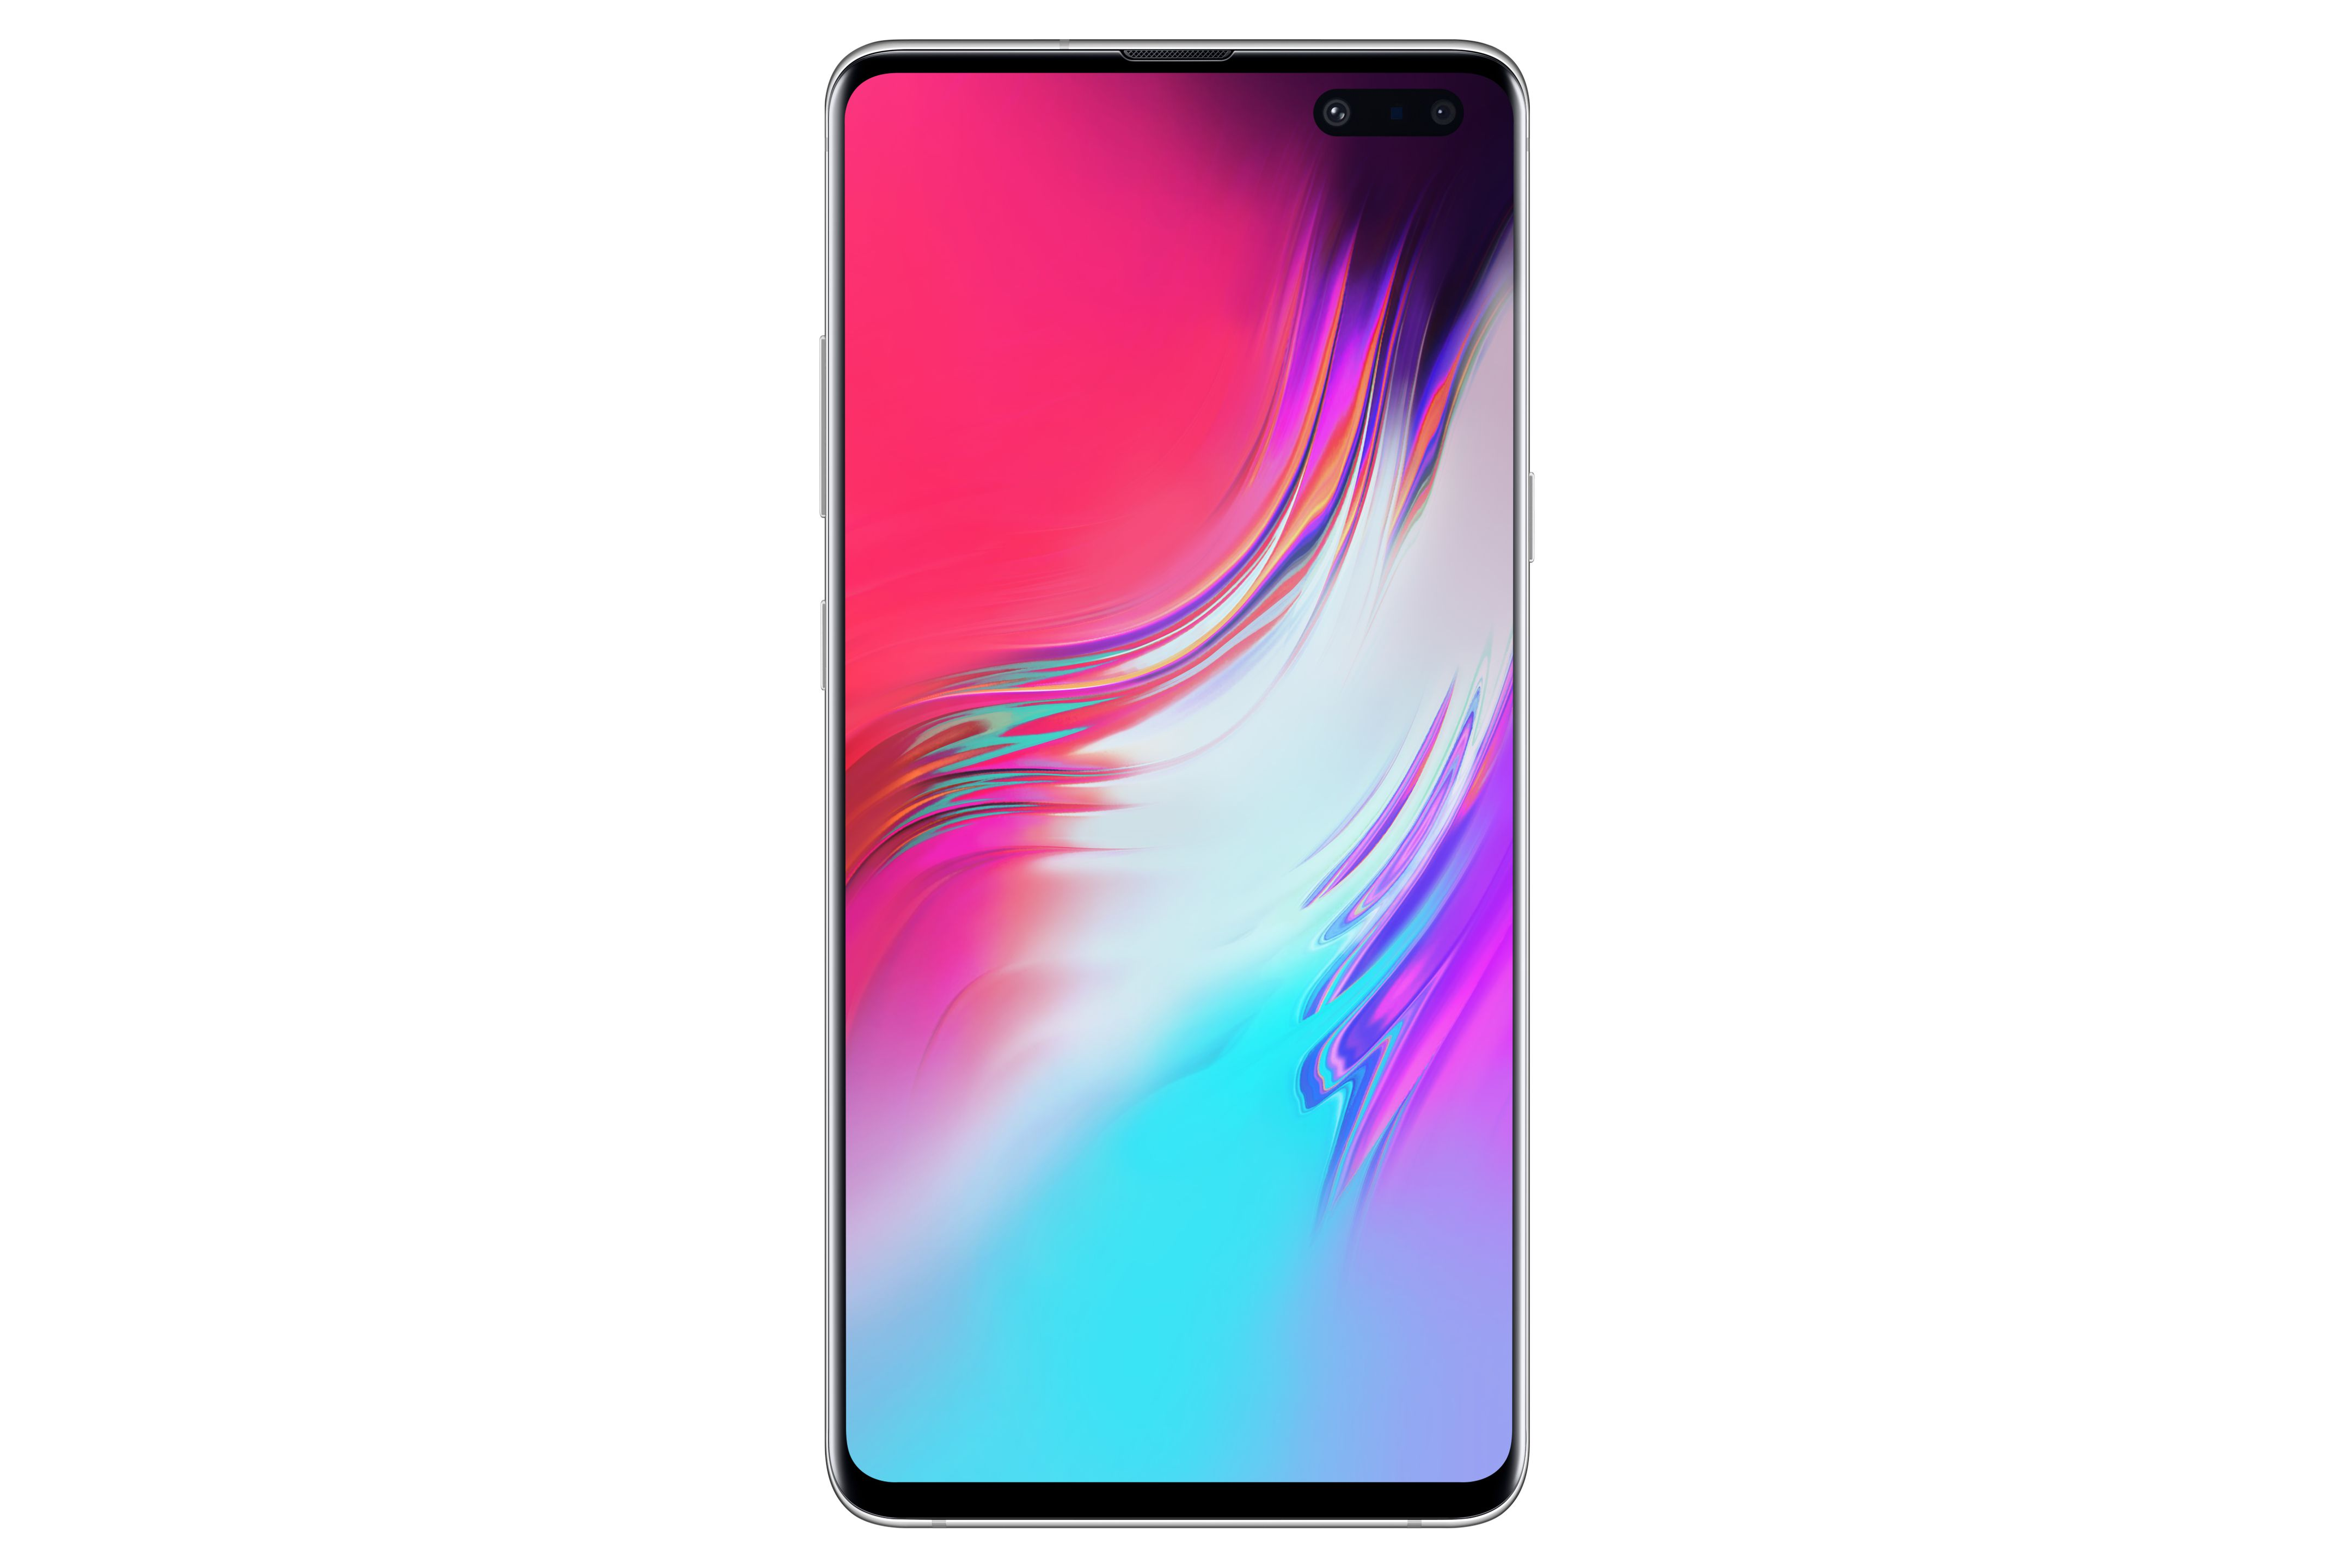 galaxy-s10-5g-front-1553164426